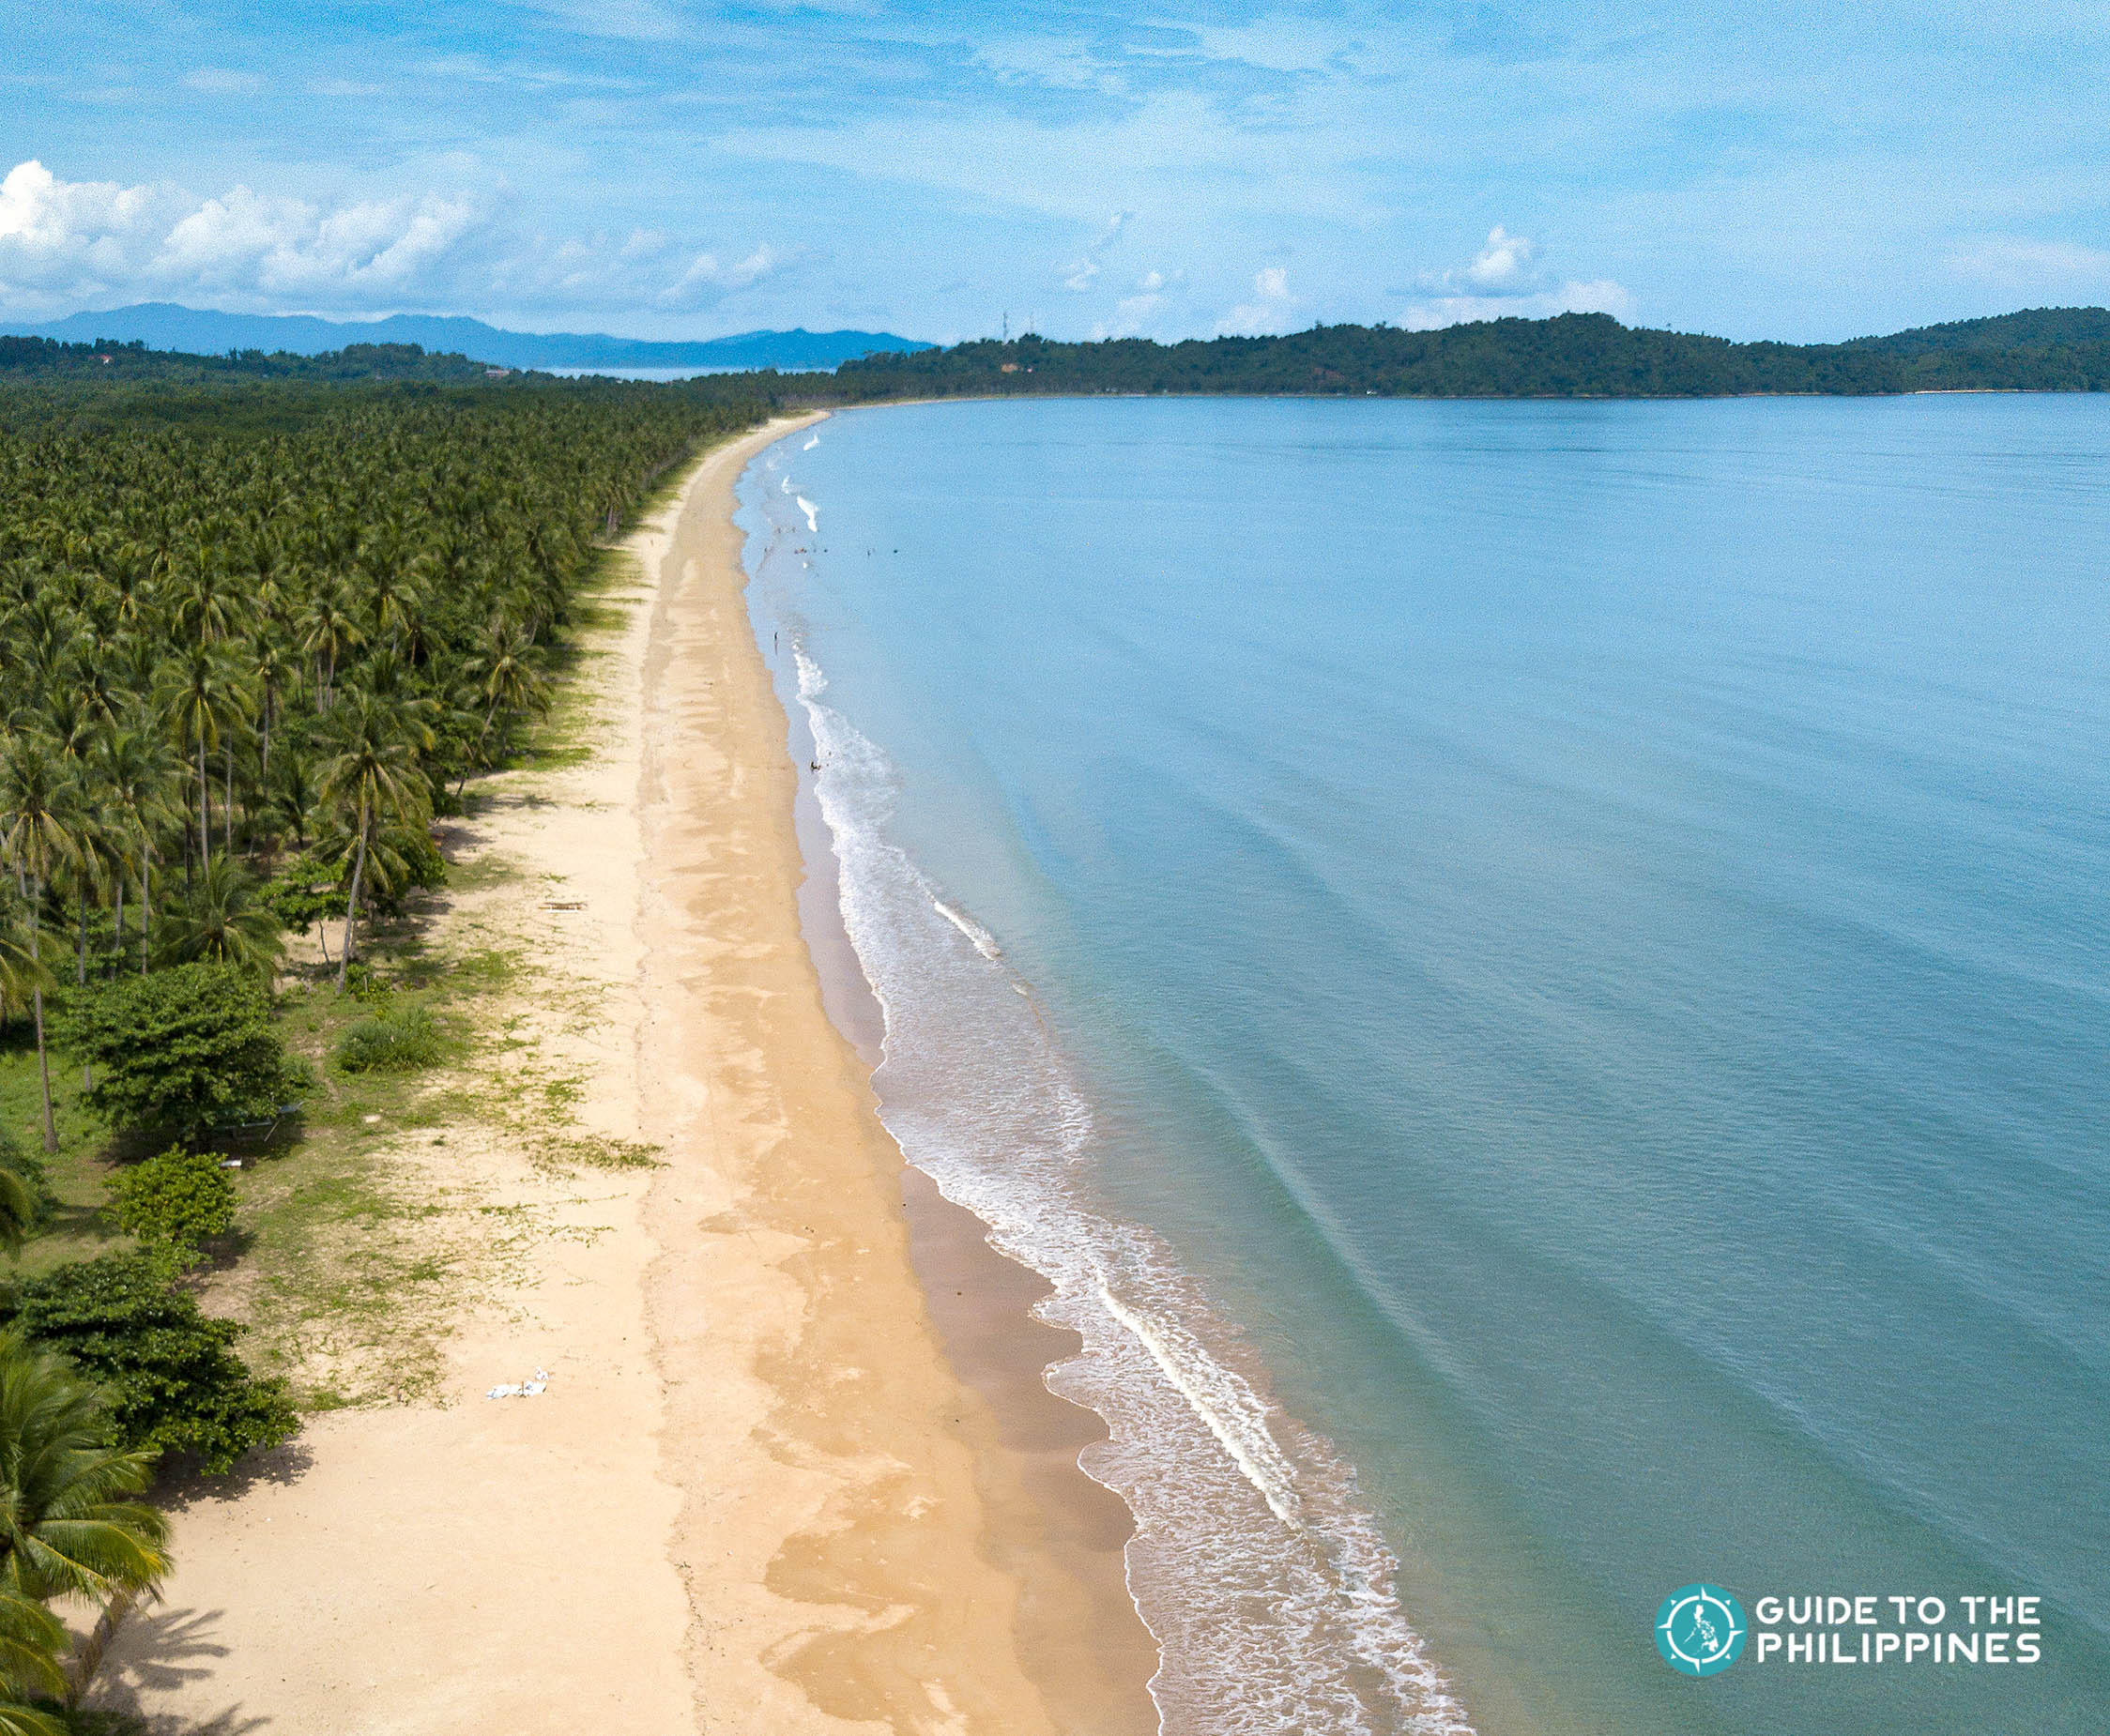 San Vicente Palawan Travel Guide: Home of the Longest Beach in the Philippines